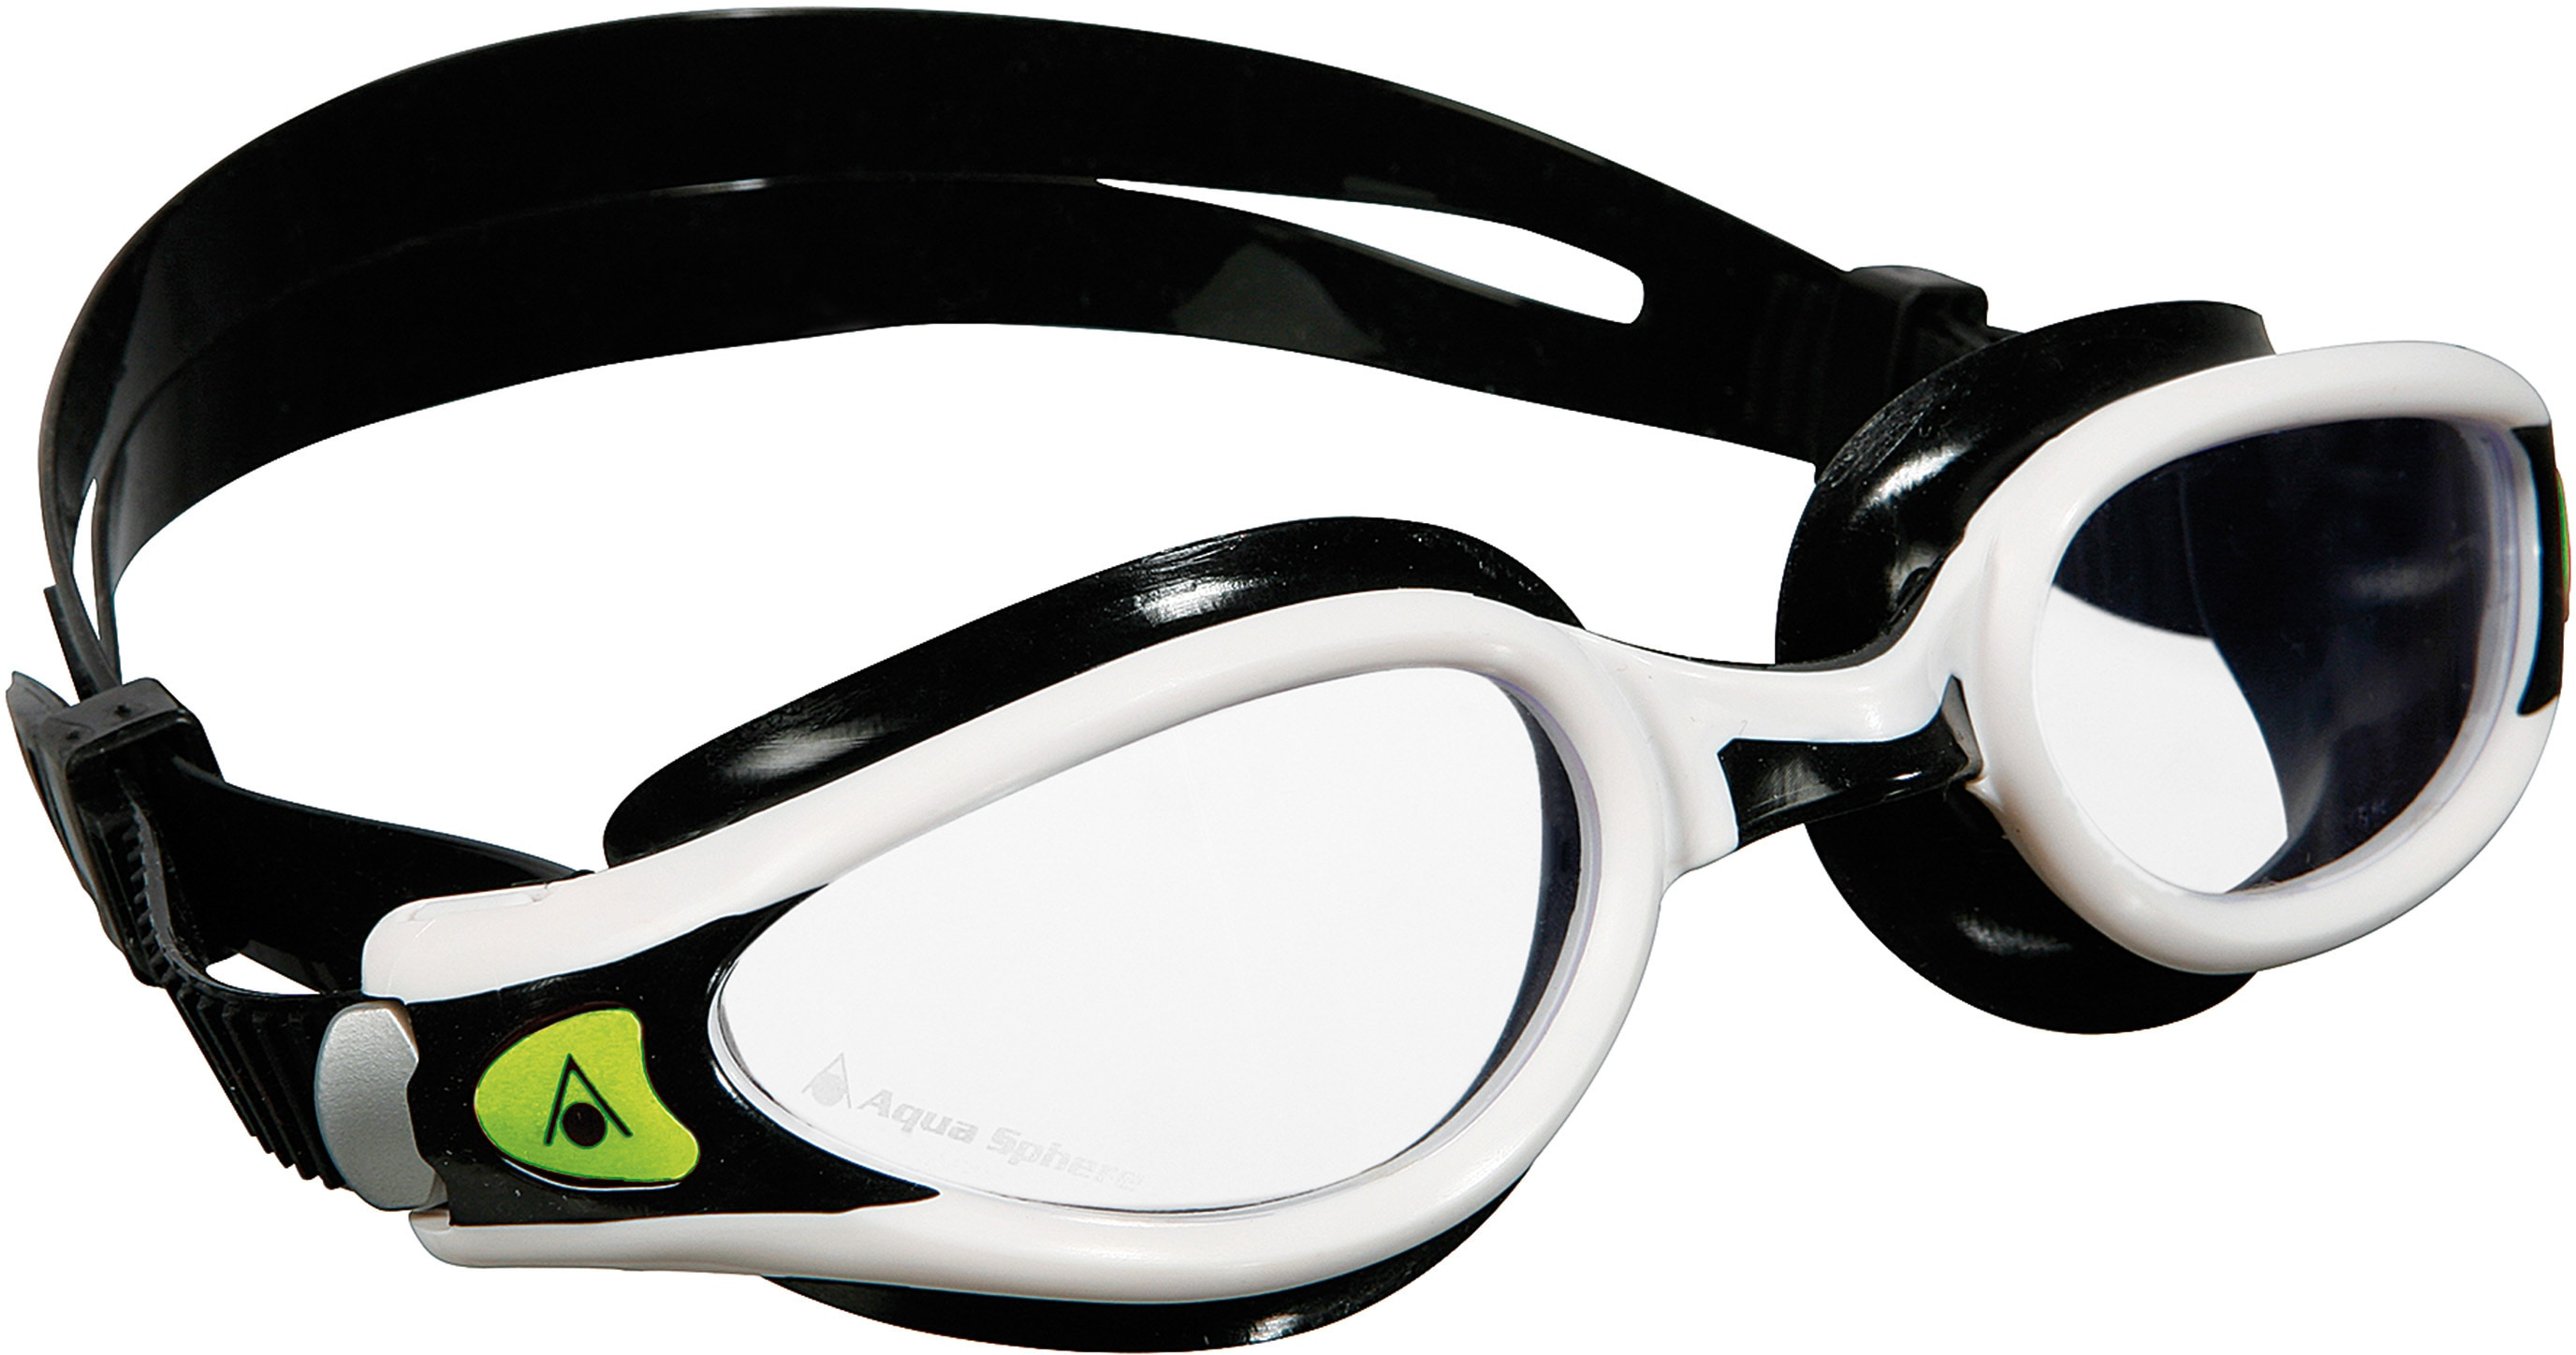 Image of Aqua Sphere Schwimmbrille »Kaiman Exo«